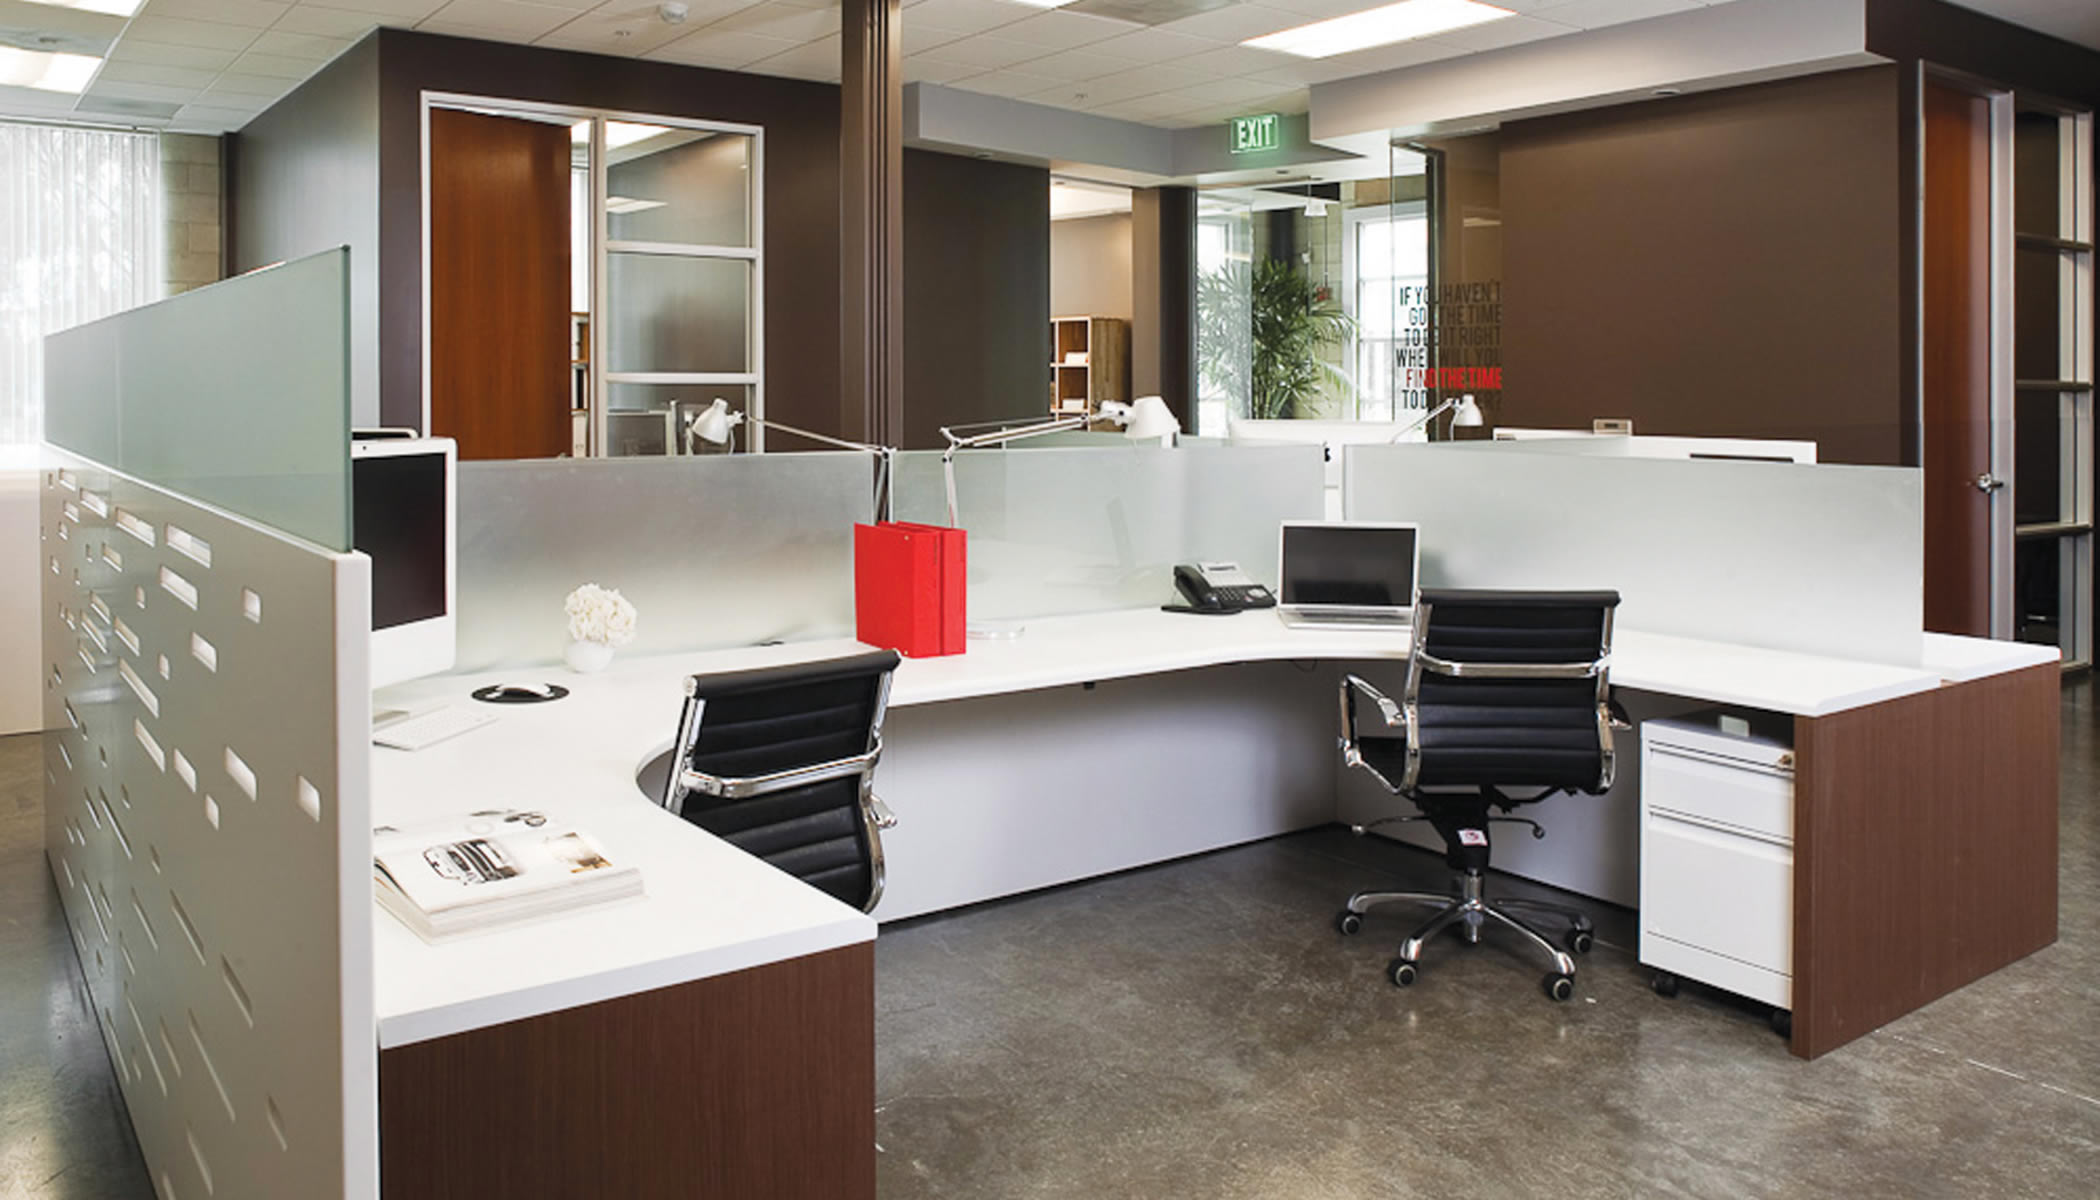 beats by dre office. america offices beats by dre office